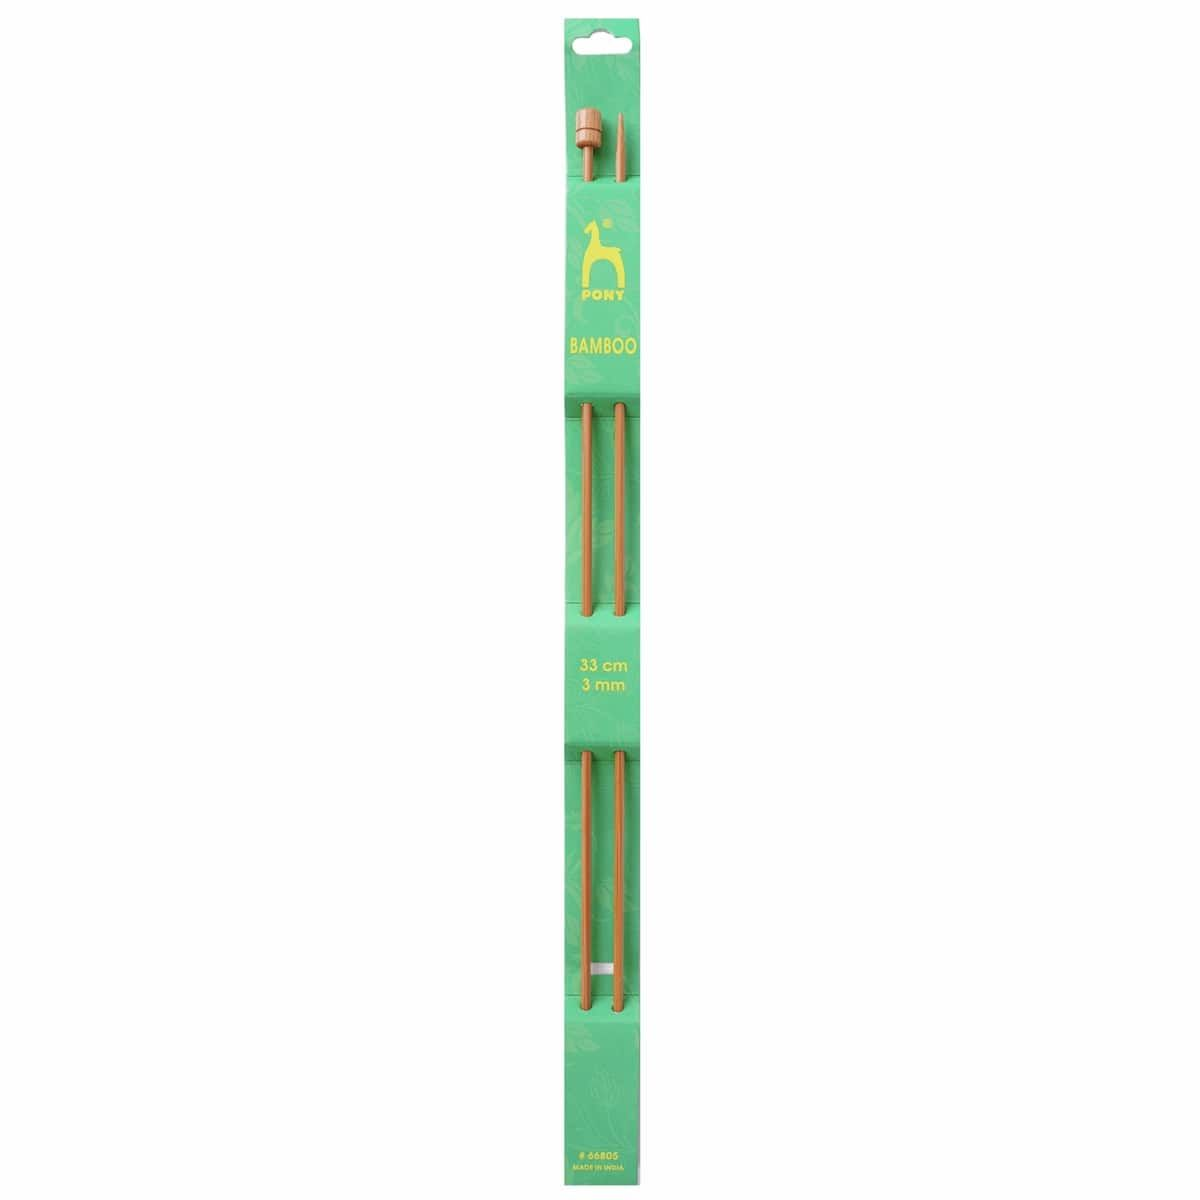 Pony Pair Of Bamboo Single Ended Knitting Pins - 33cm x 3mm